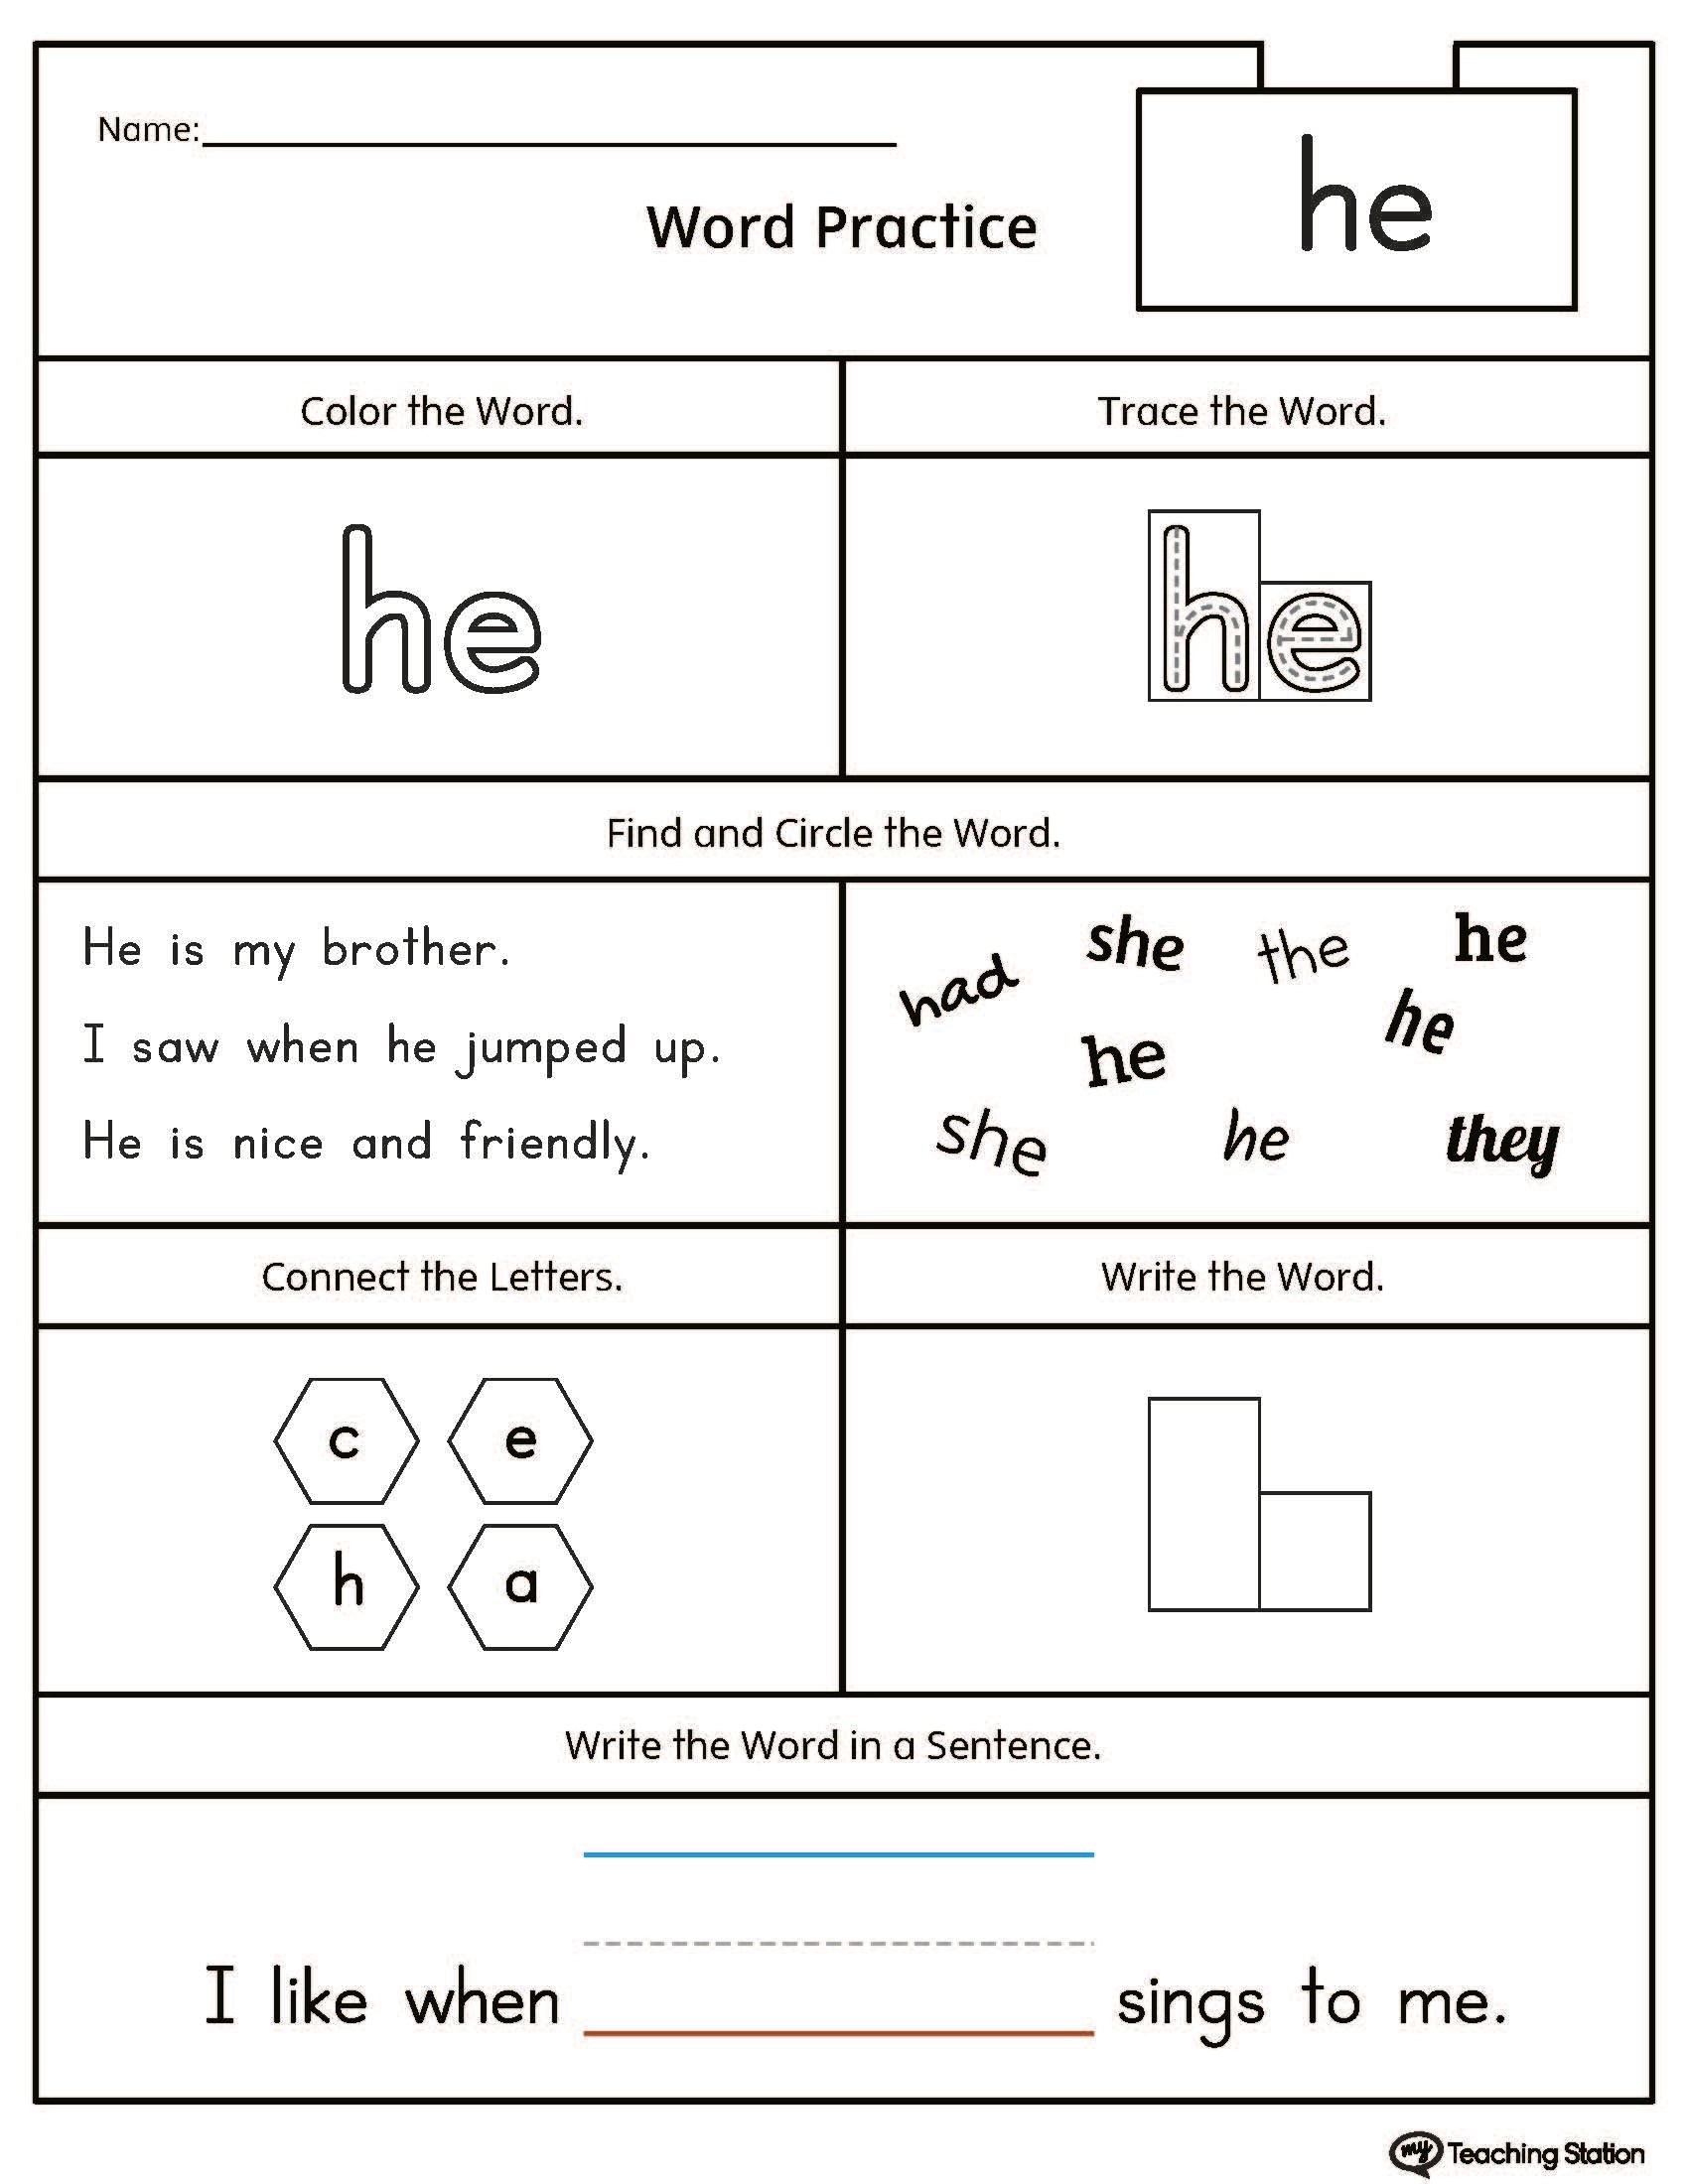 hight resolution of High-Frequency Word HE Printable Worksheet   MyTeachingStation.com